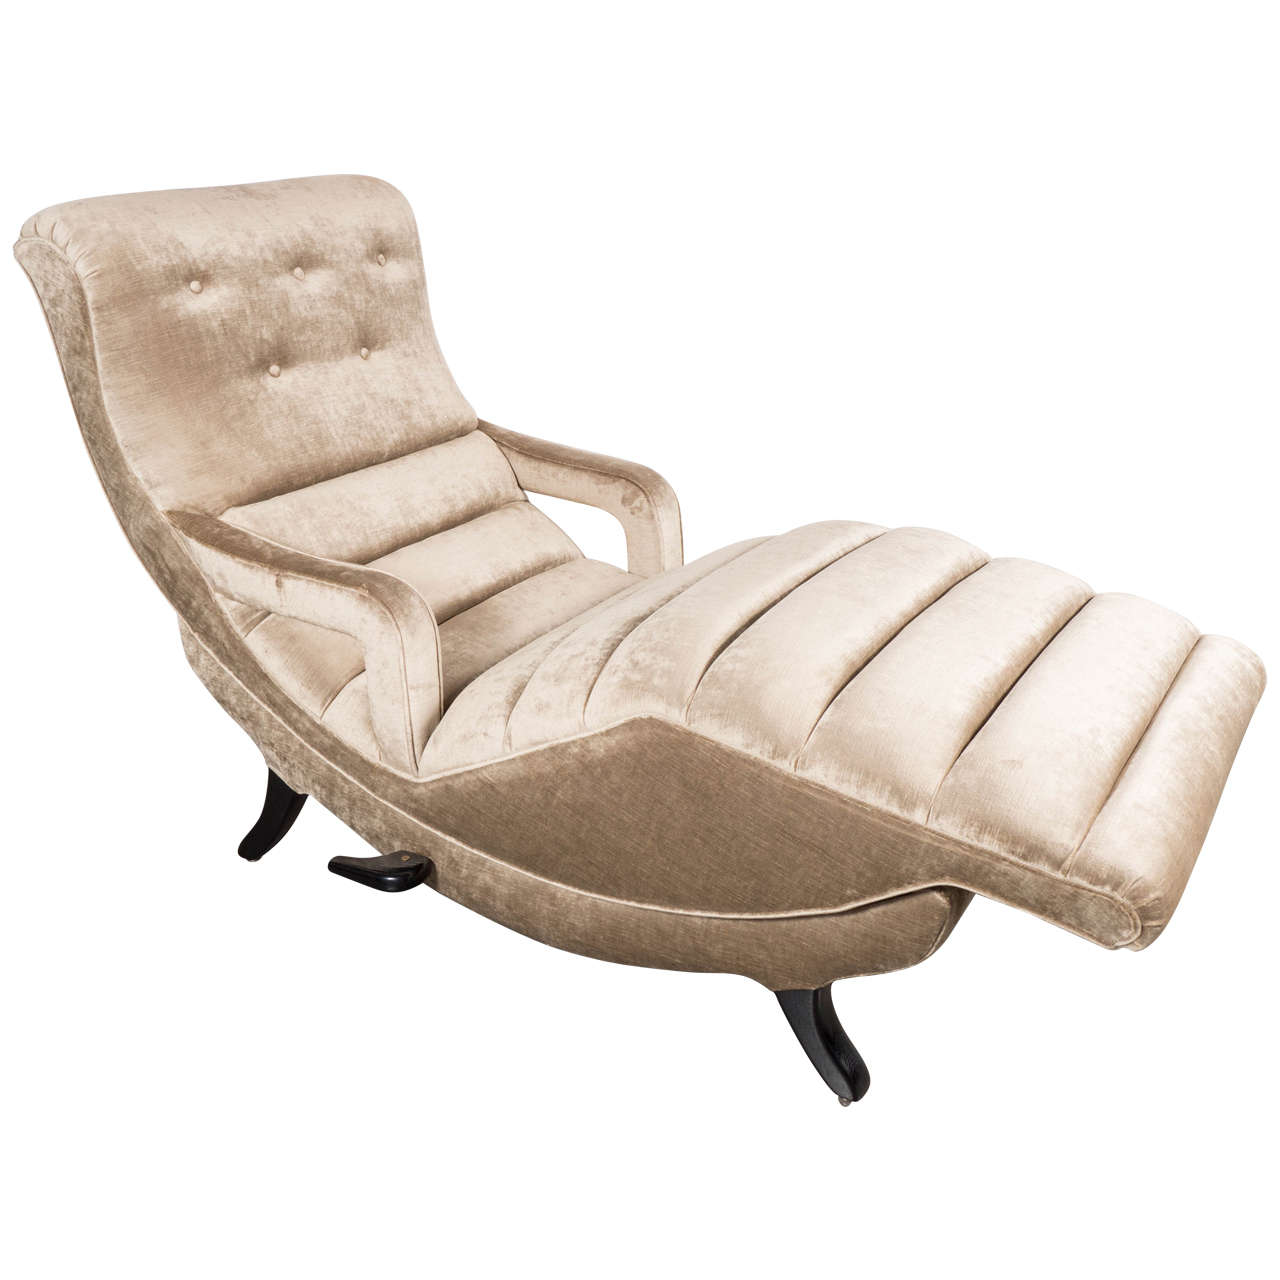 Sophisticated Mid Century Modernist Adjustable Chaise At